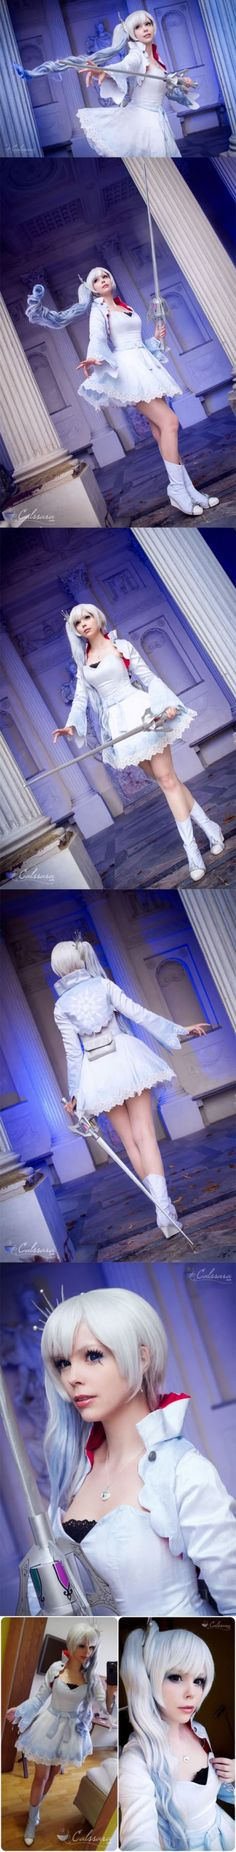 Cosplay Manga Costume RWBY - Weiss Schnee by Bell (Calssara) - More memes, funny videos and pics on Rwby Cosplay, Cosplay Outfits, Cosplay Girls, Cosplay Costumes, Cosplay Ideas, Amazing Cosplay, Best Cosplay, Real Anime, Cosplay Tutorial